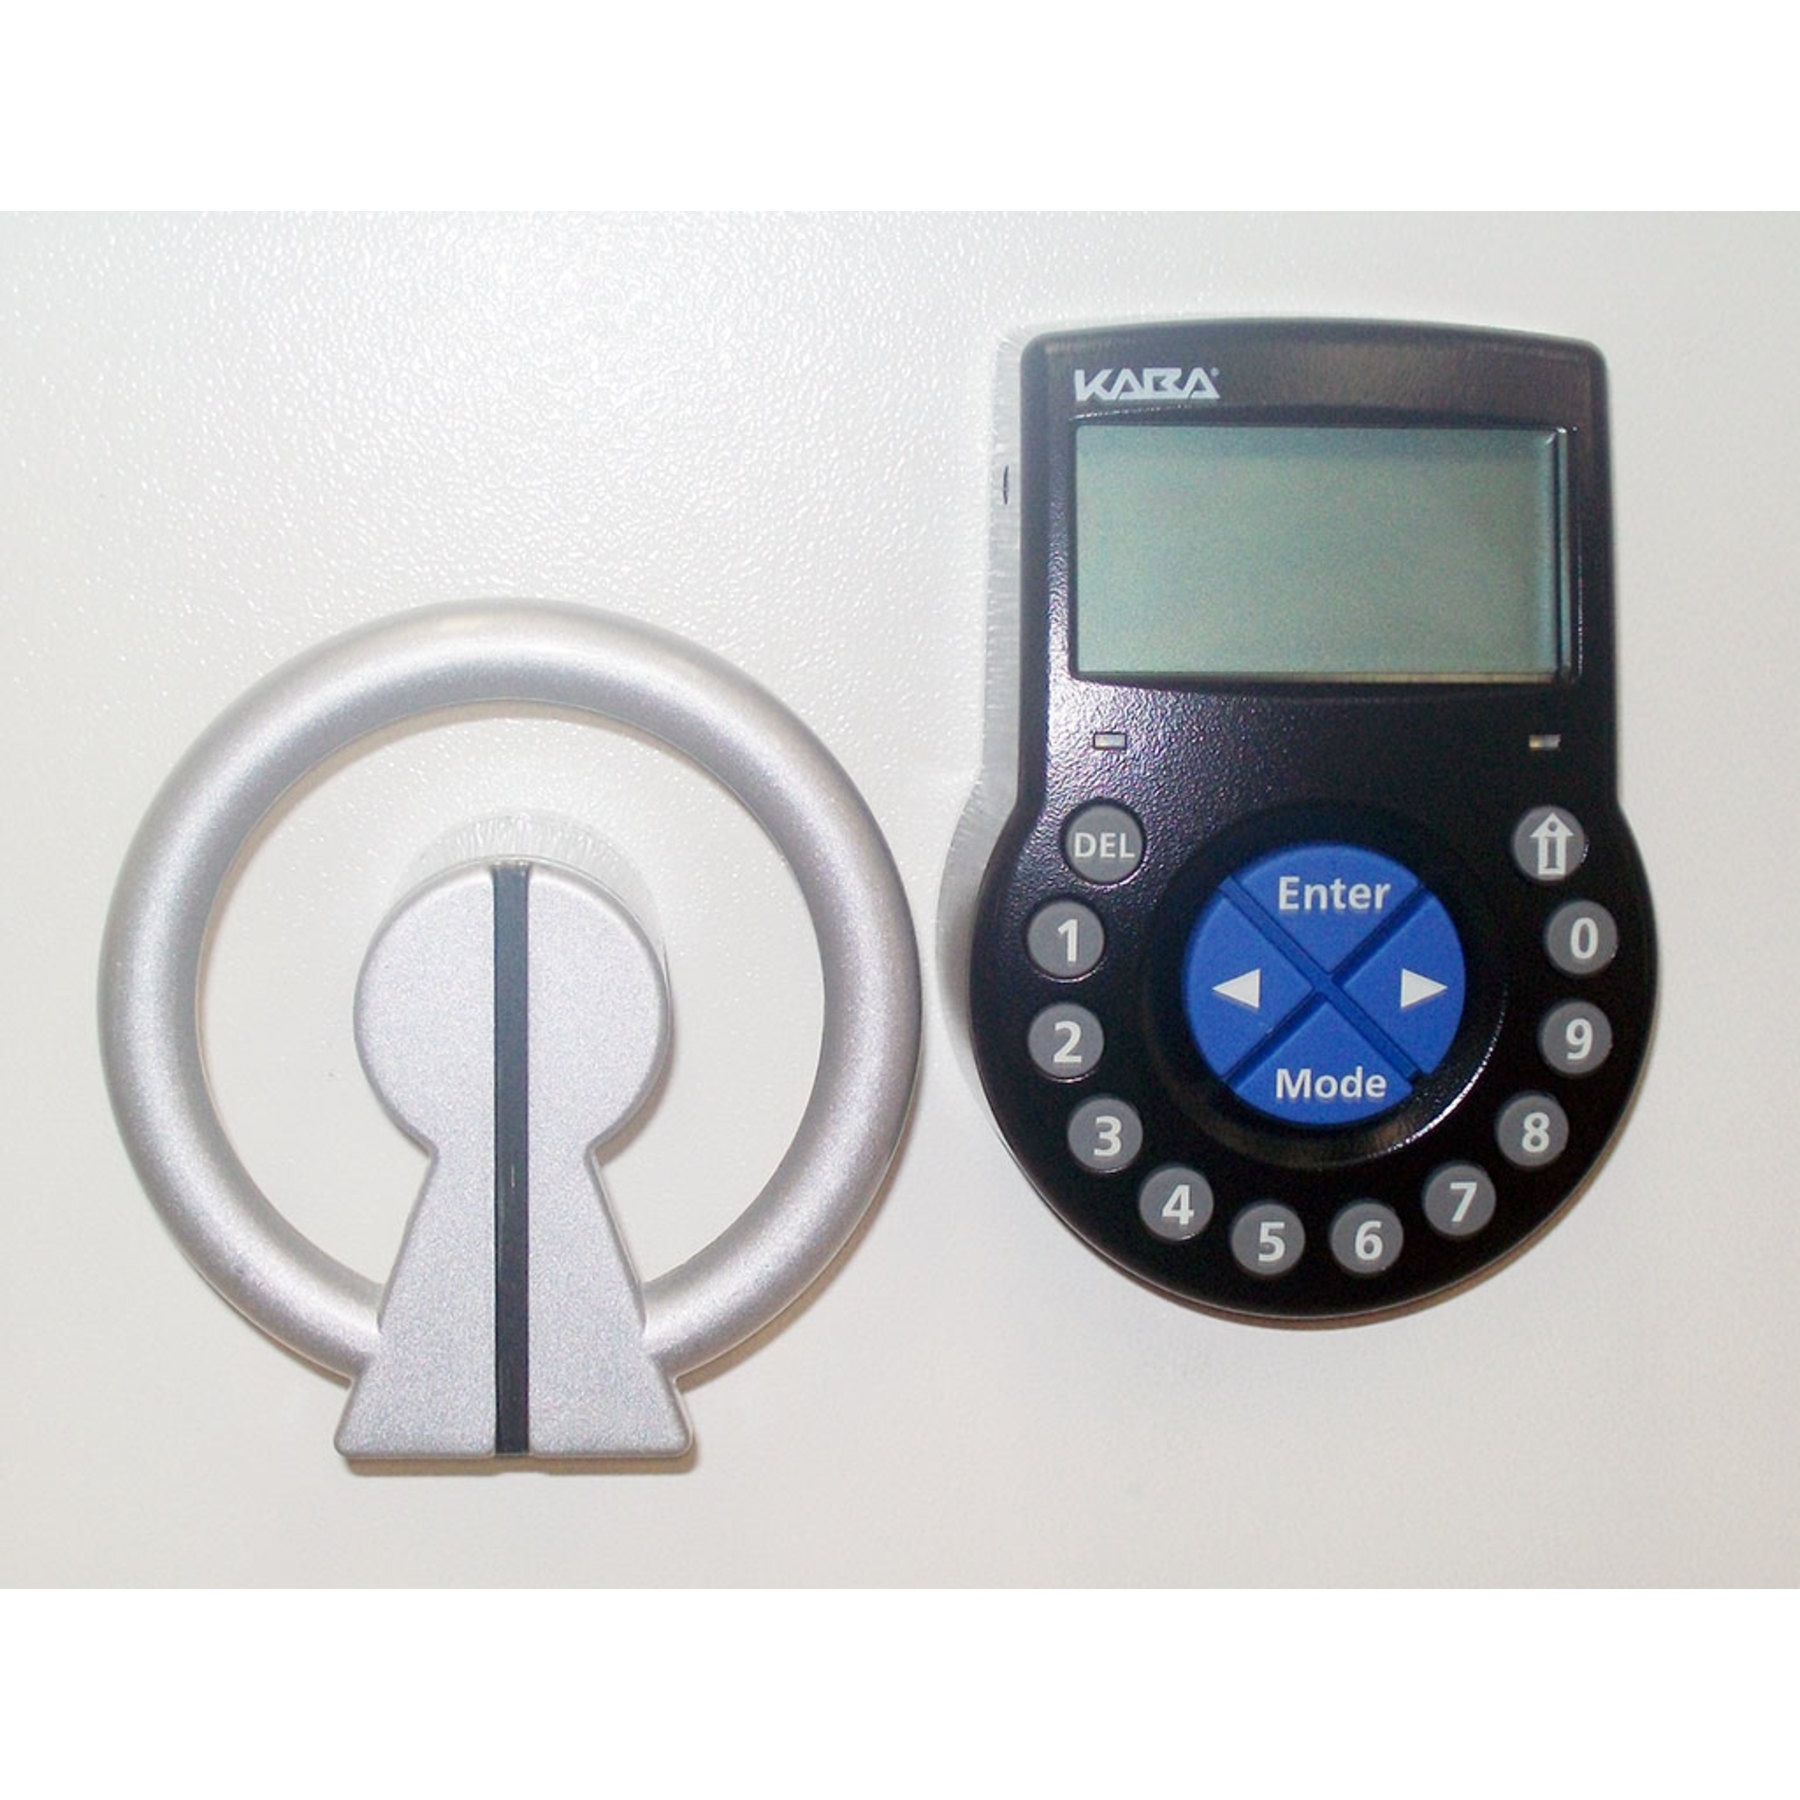 Robur I-340 Security Safe with Kaba 525 Time Lock | All